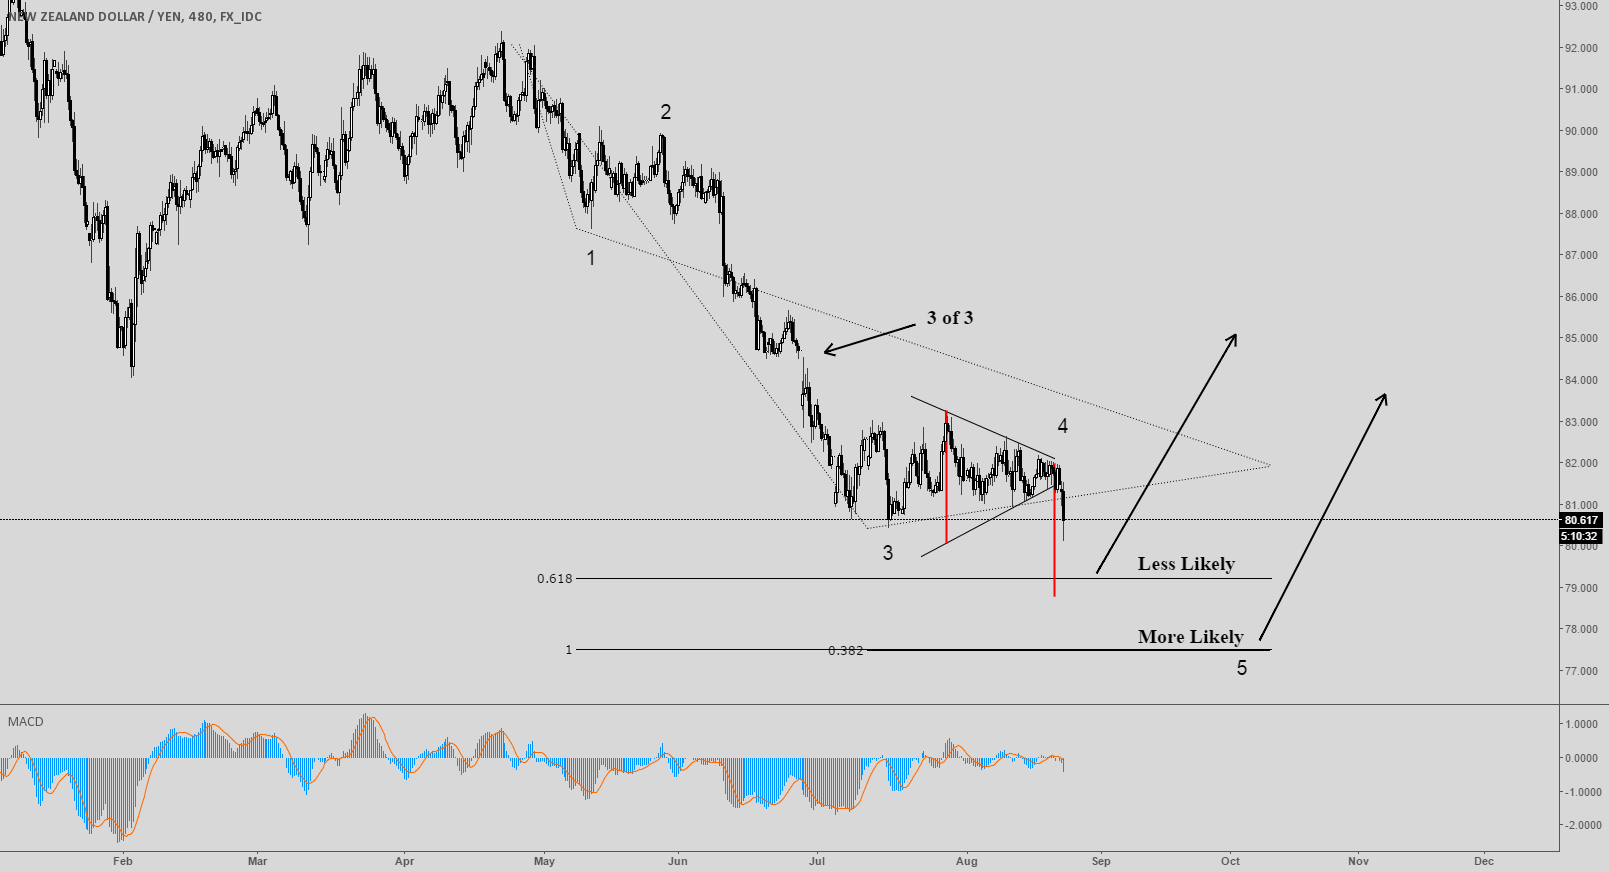 NZDJPY entering it's final daily 5th; a sharp rally to follow